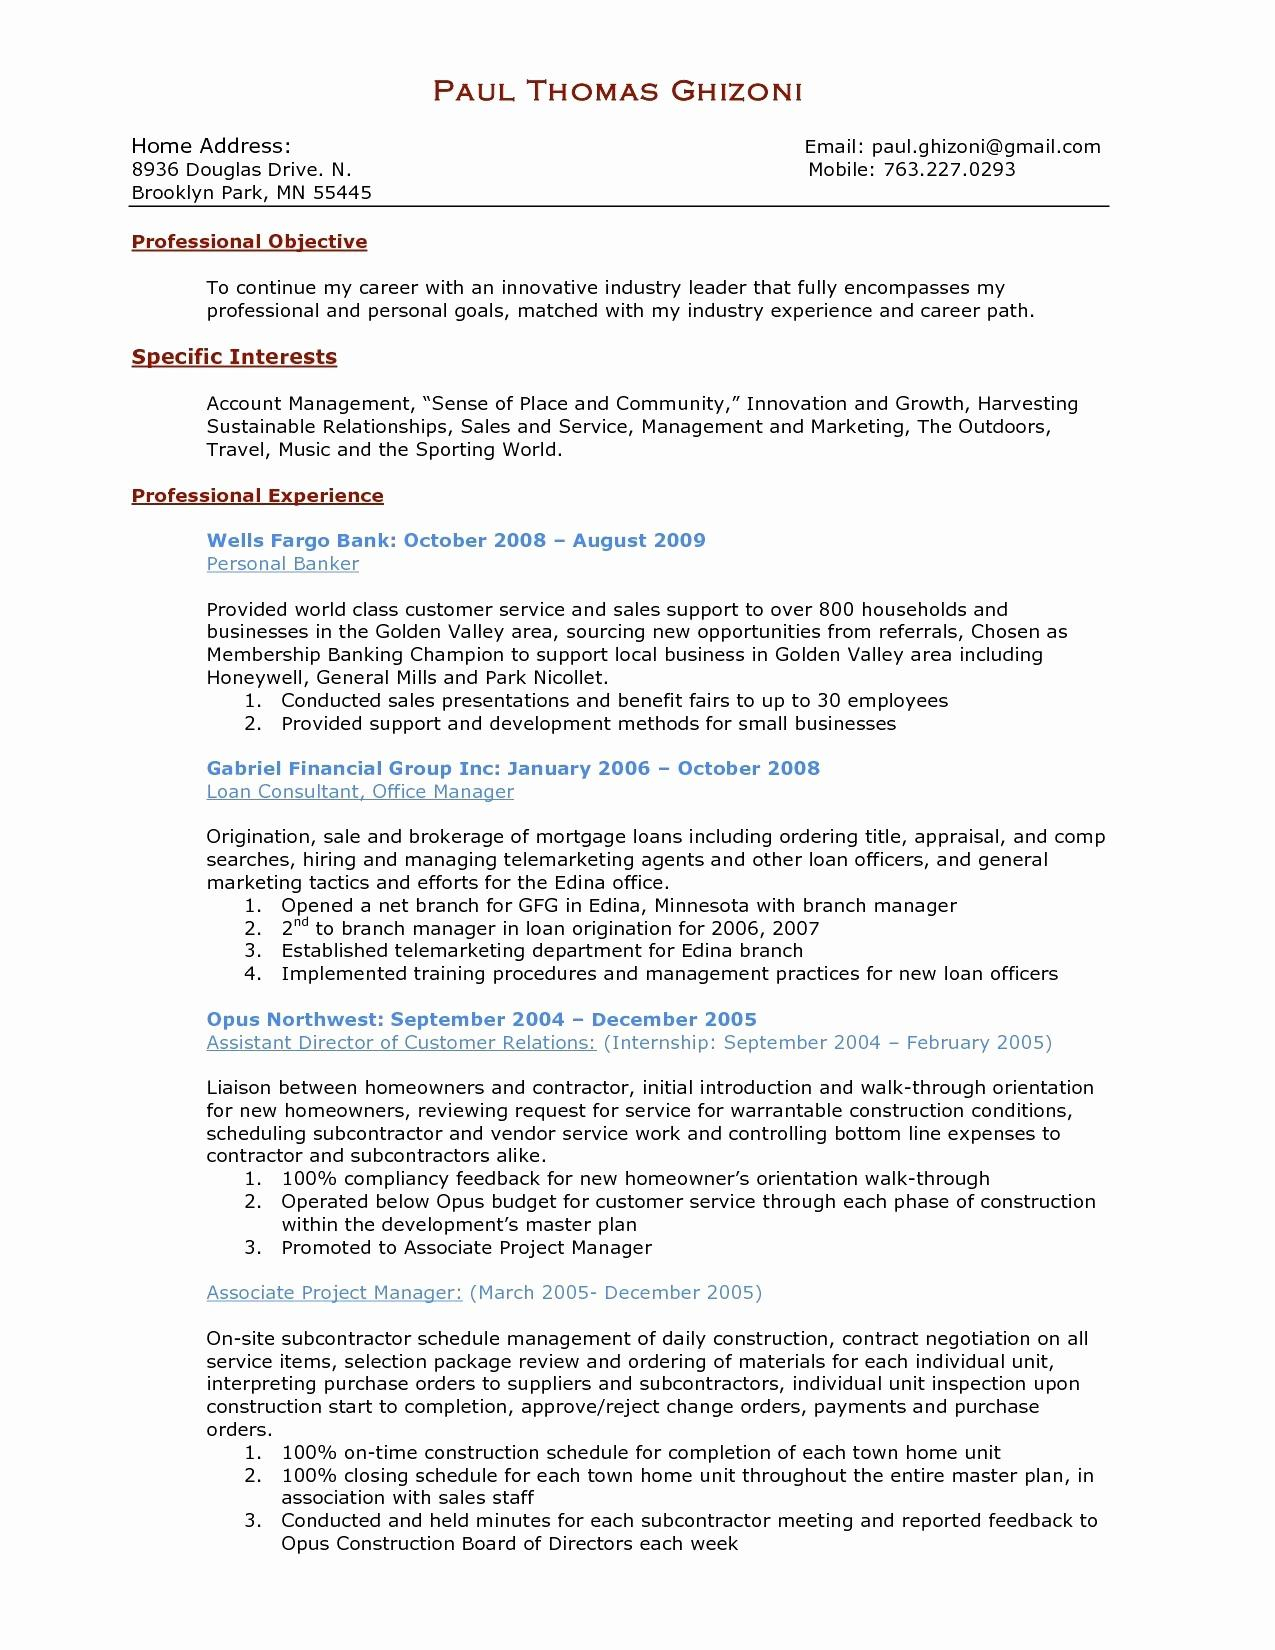 Product Management Resume - Project Manager Resume Sample Luxury Product Manager Resume Template